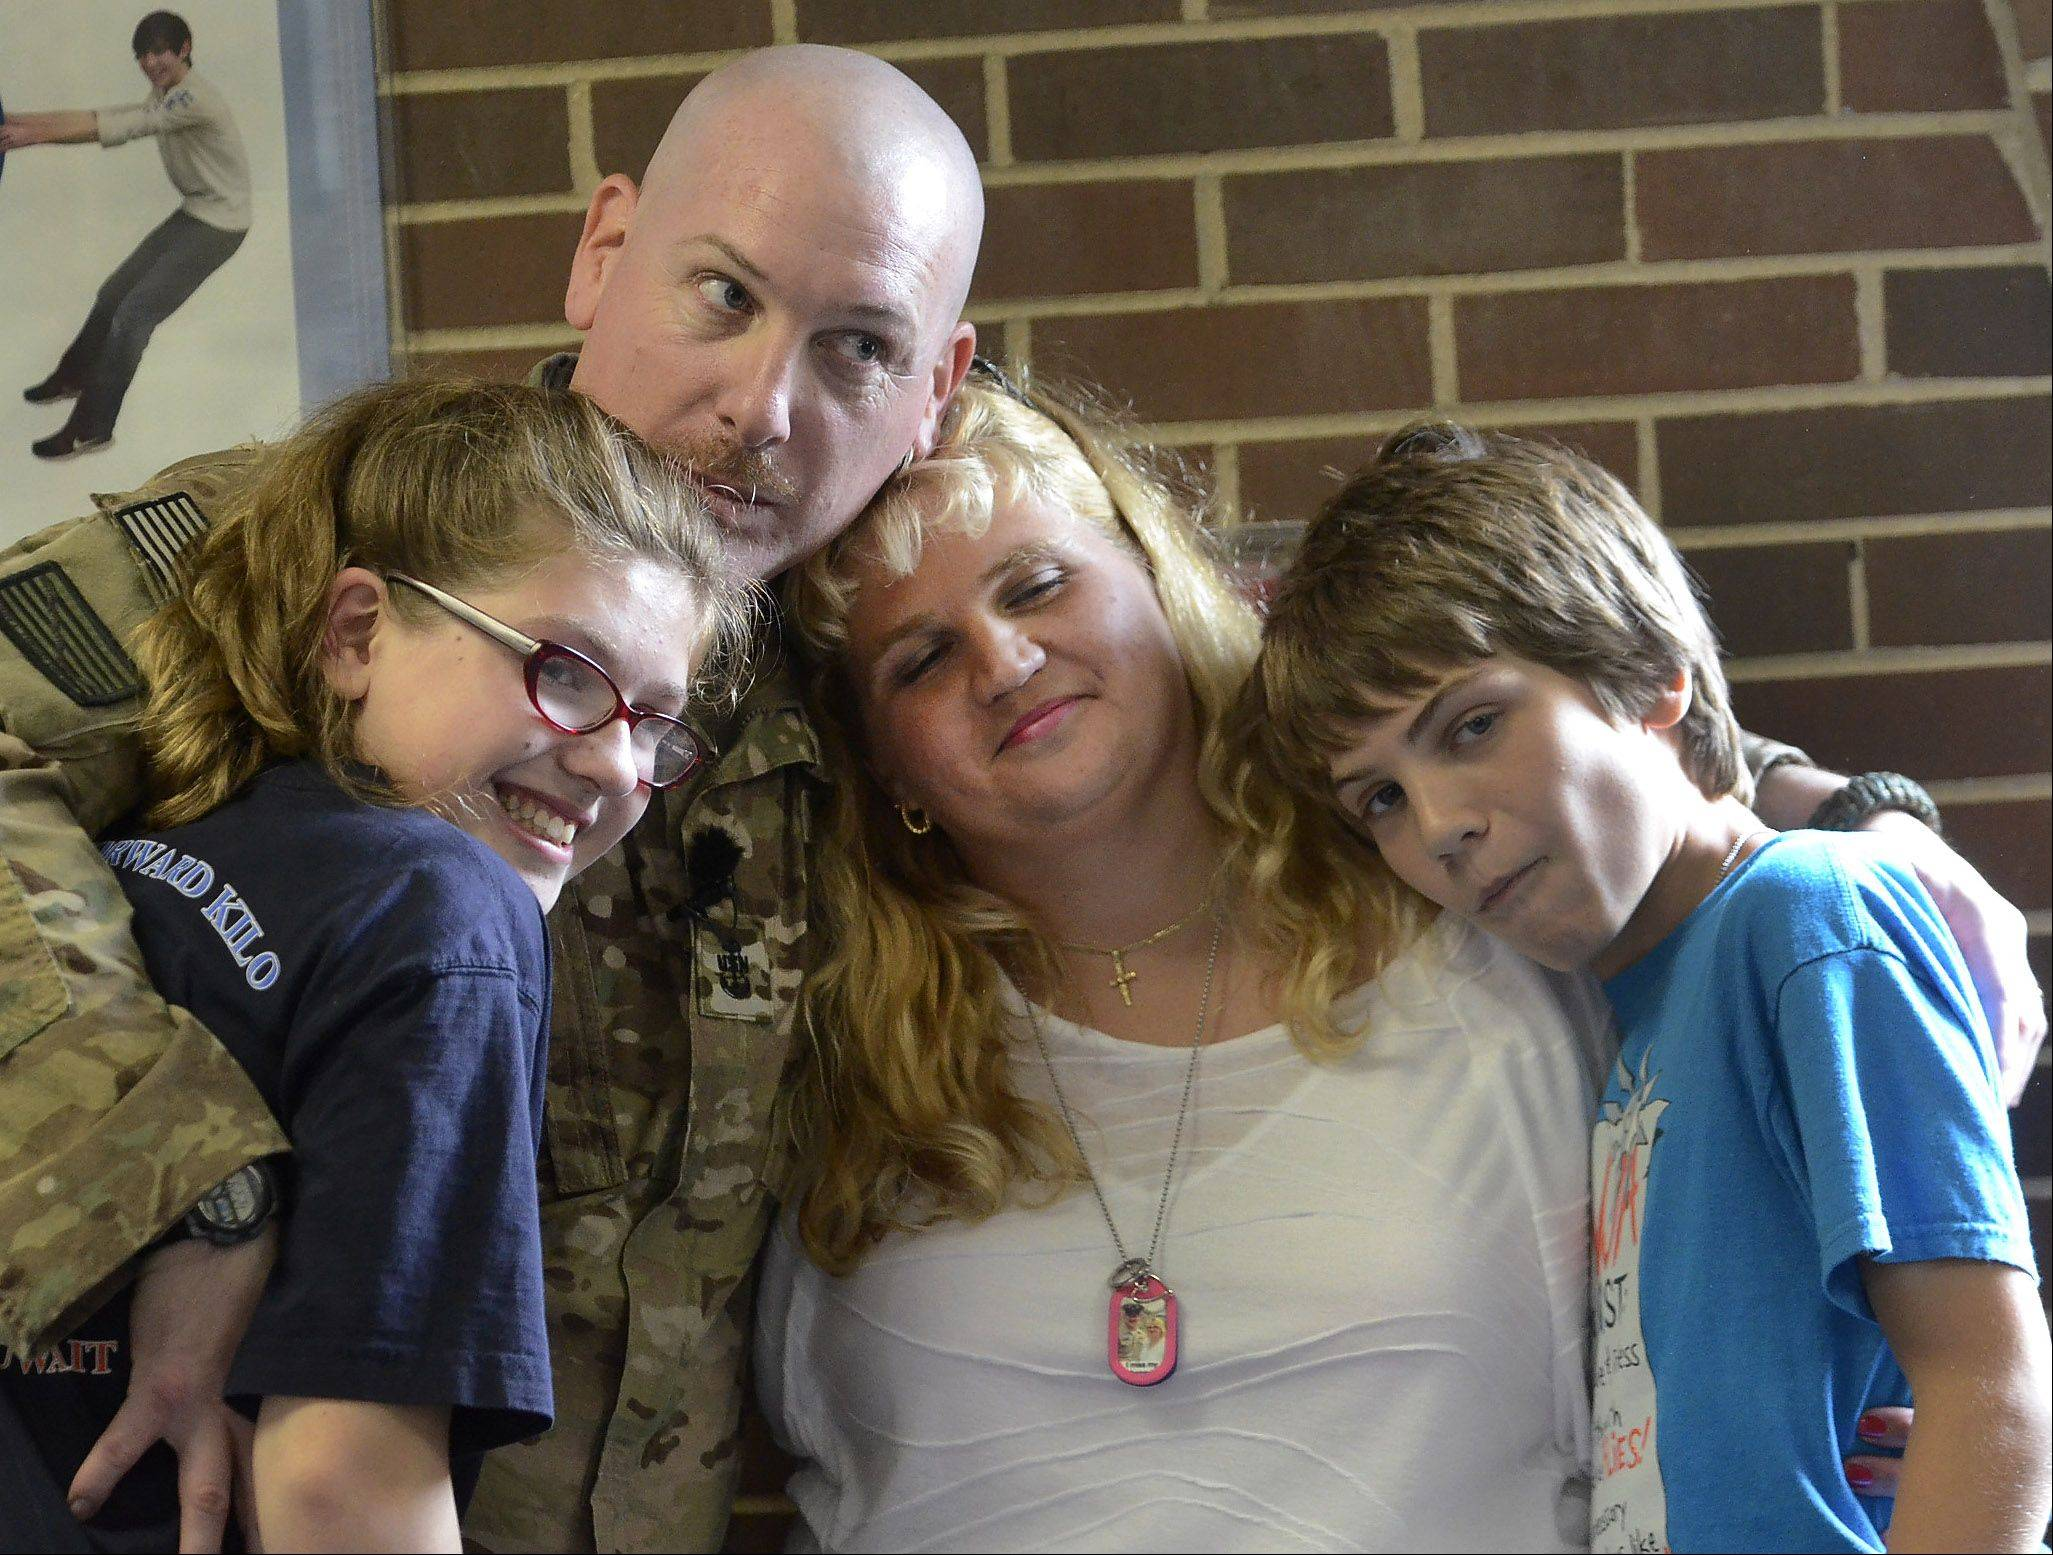 Navy Chief Gunner's Mate Patrick Fissette reunites with his family, daughter Kailey, wife Kim and son Tristan after surprising his children at Mead Junior High School in Elk Grove Village Friday after returning home from his last tour of duty.